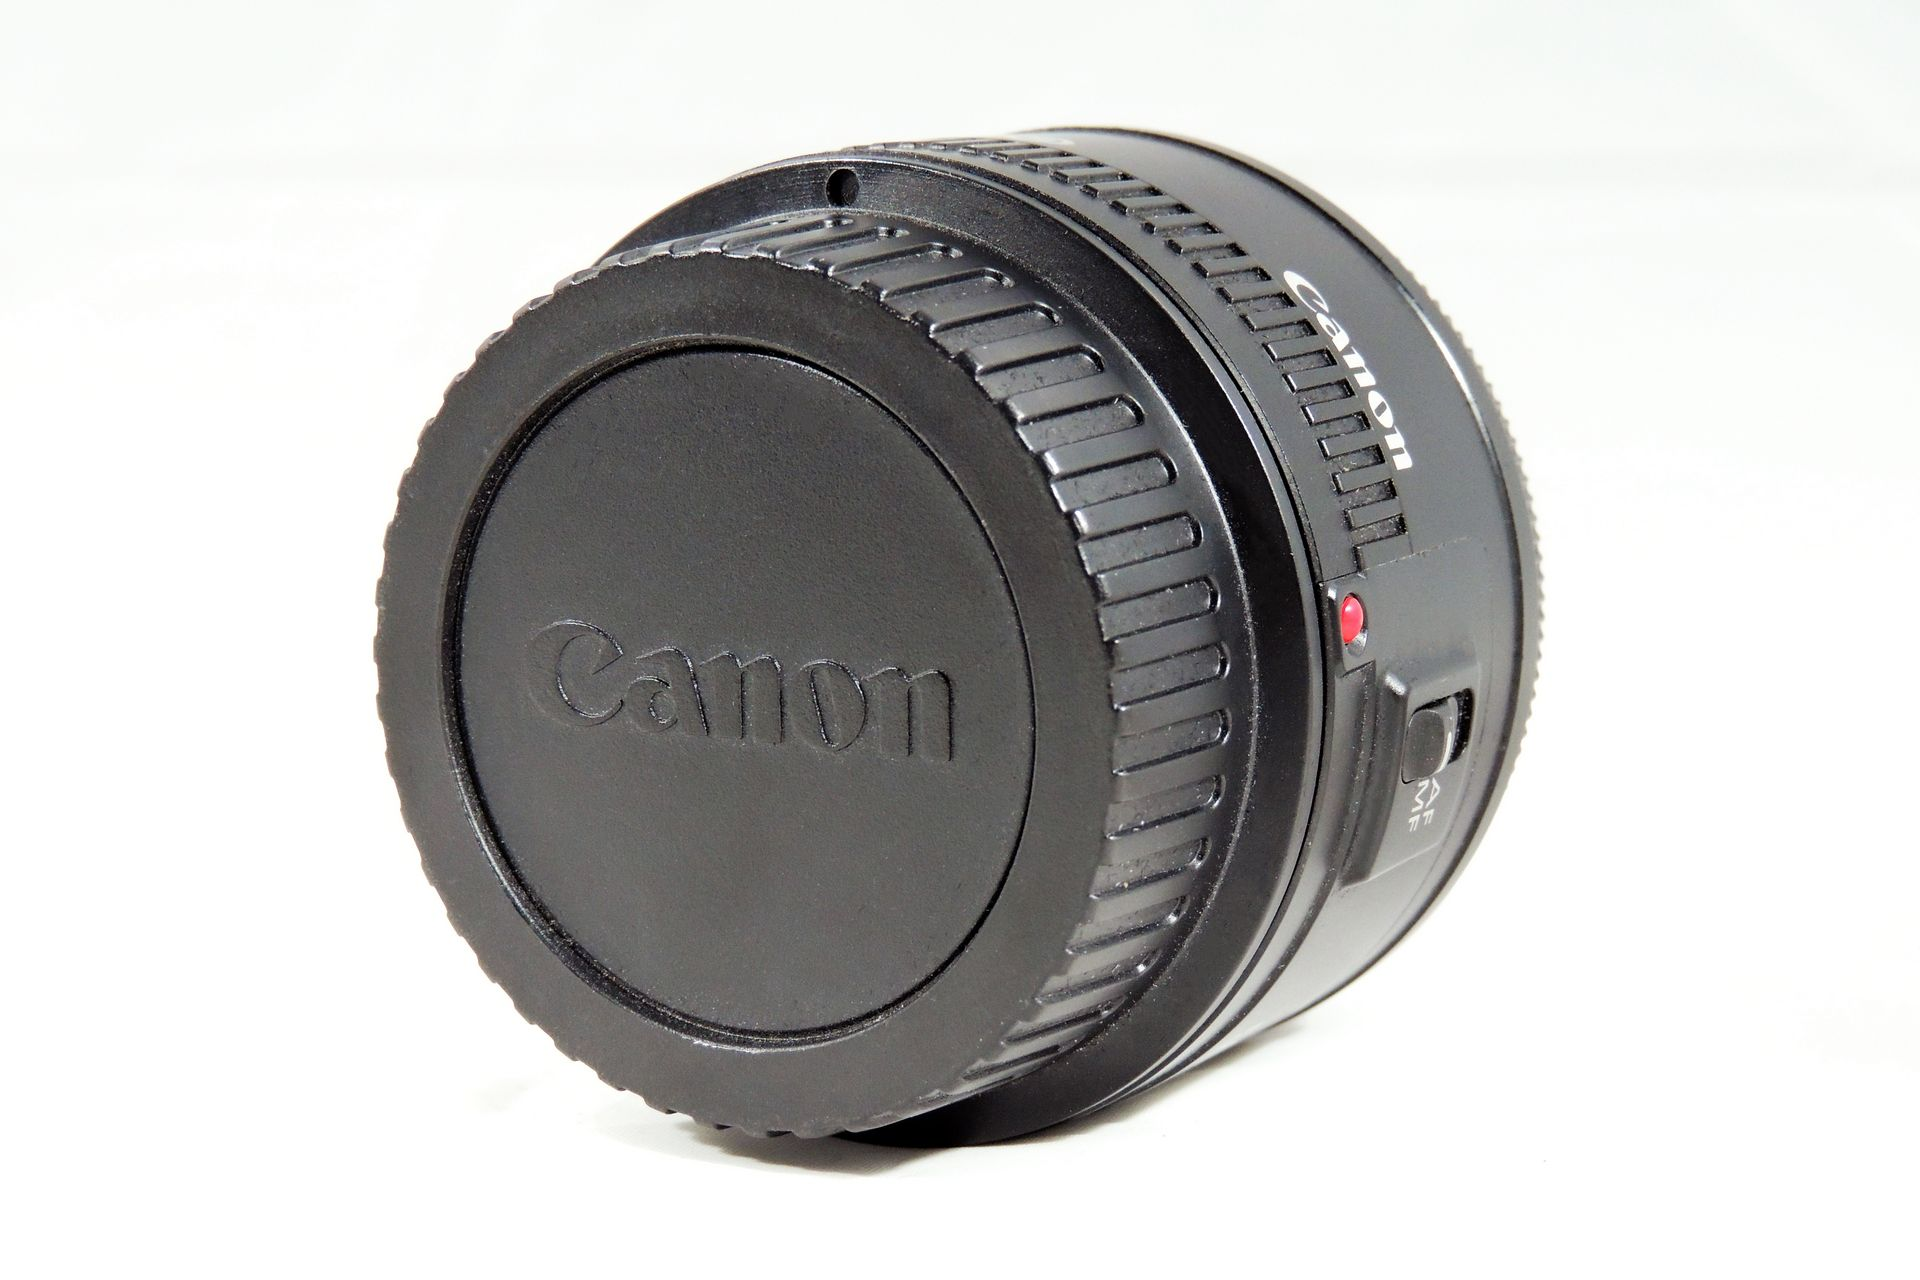 Canon EF 50mm f1.8 lens for sale at Plasma Music